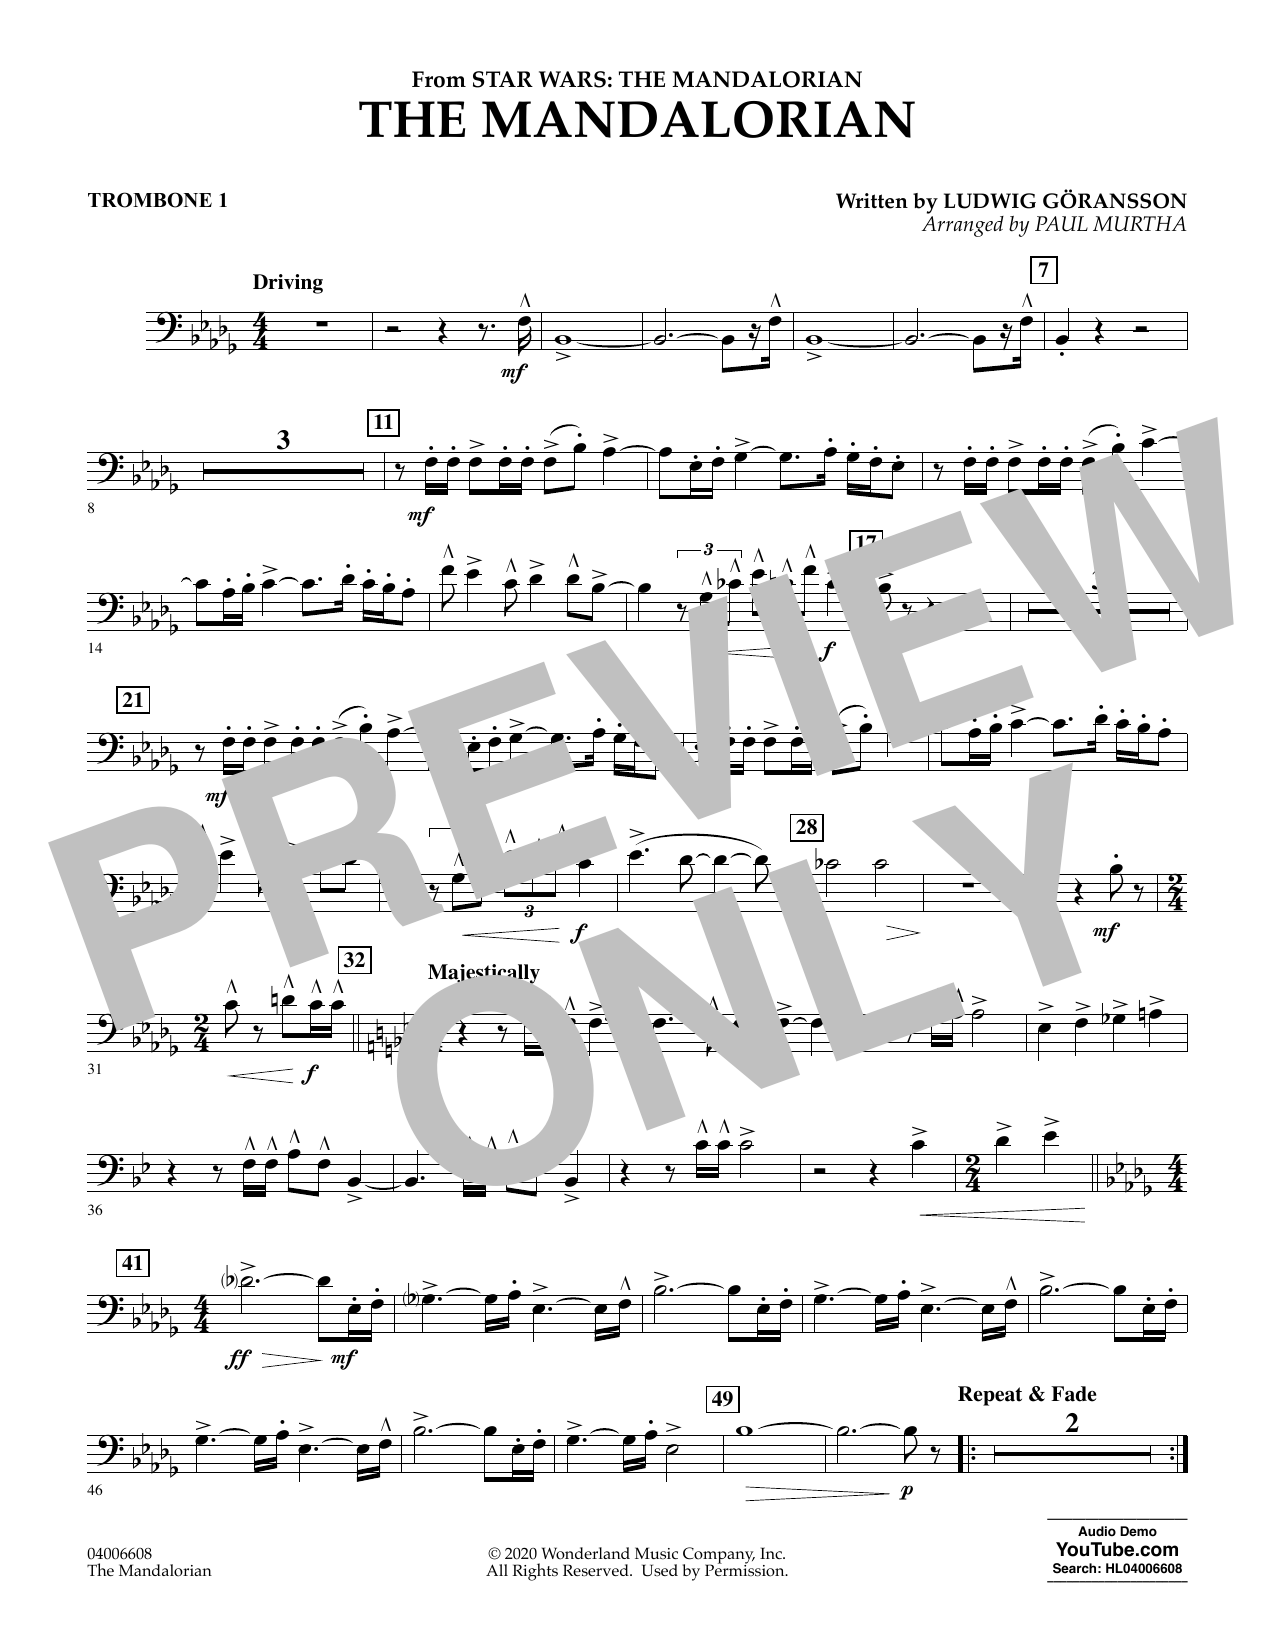 Ludwig Goransson The Mandalorian (from Star Wars: The Mandalorian) (arr. Paul Murtha) - Trombone 1 sheet music notes and chords. Download Printable PDF.